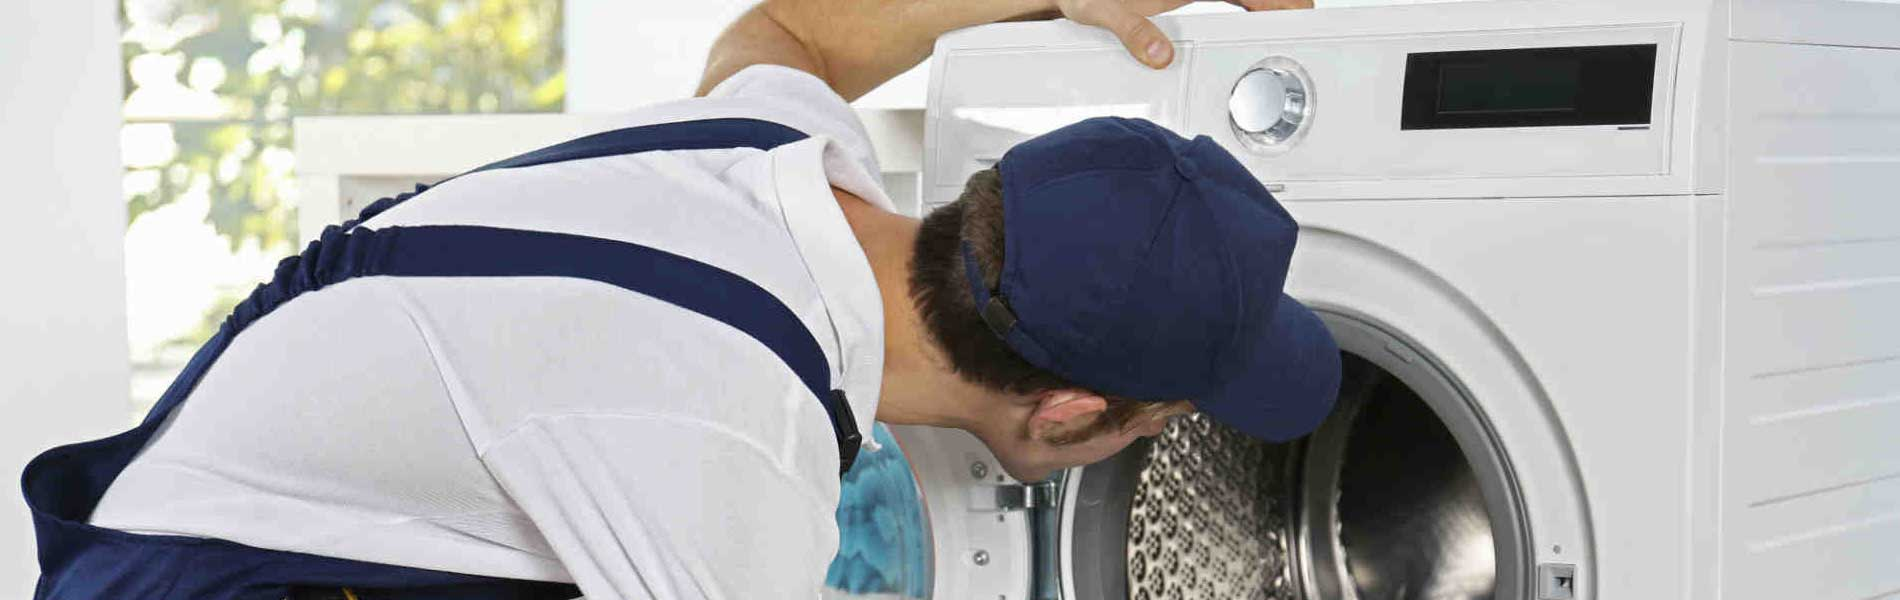 LG Washing Machine Service in Pulianthope